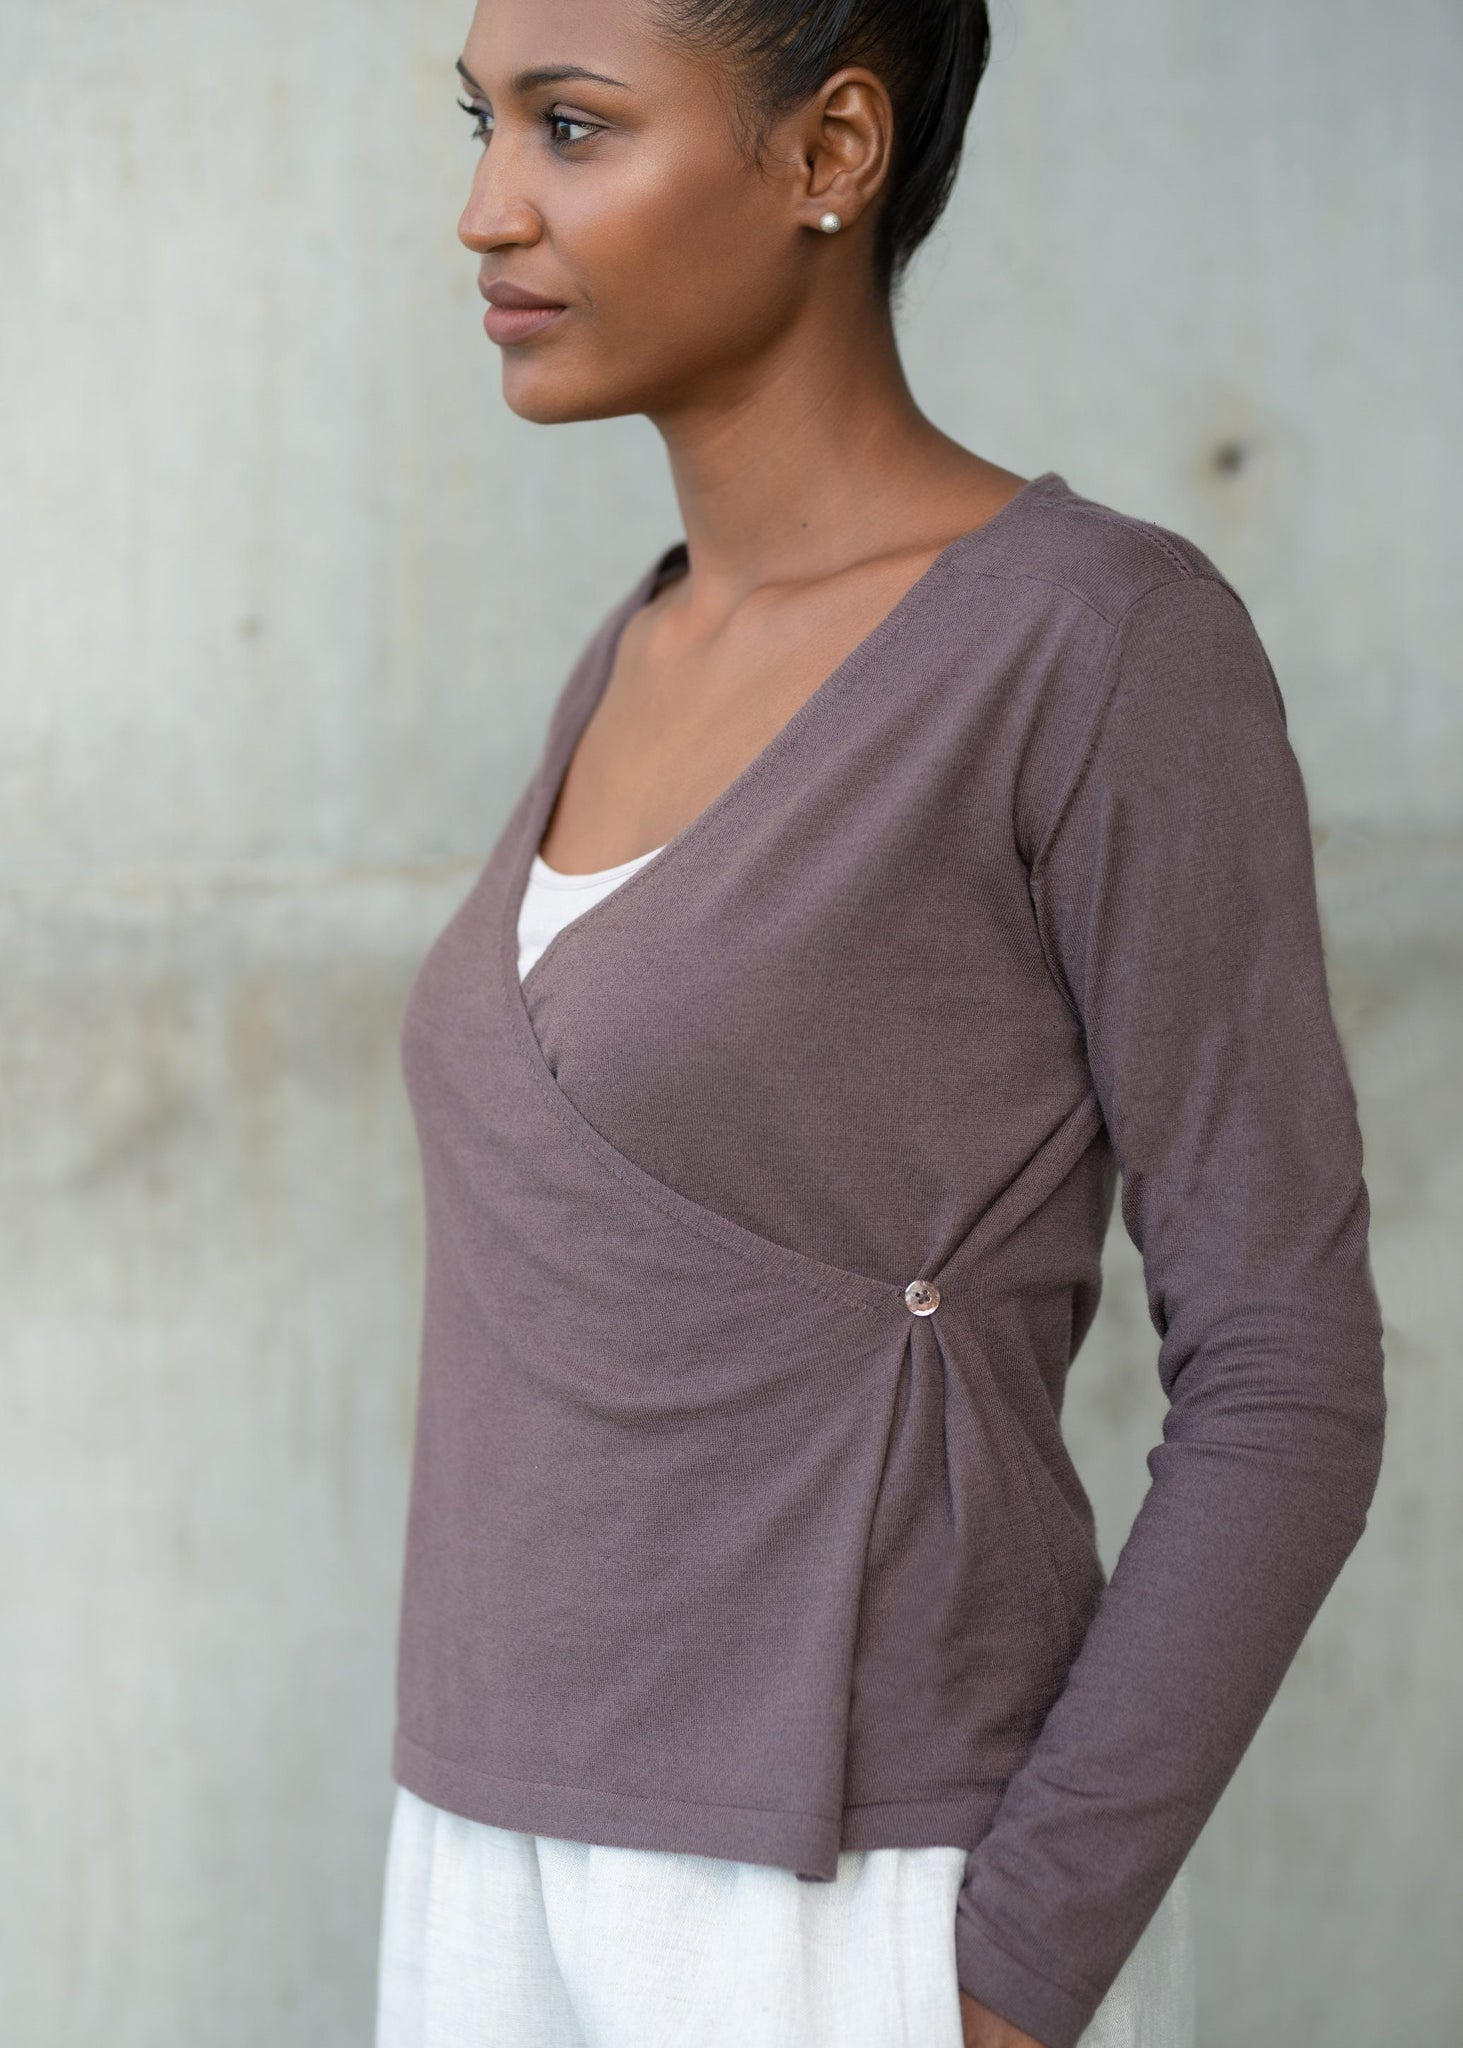 JULIE | Our comfort cross-over cardigan